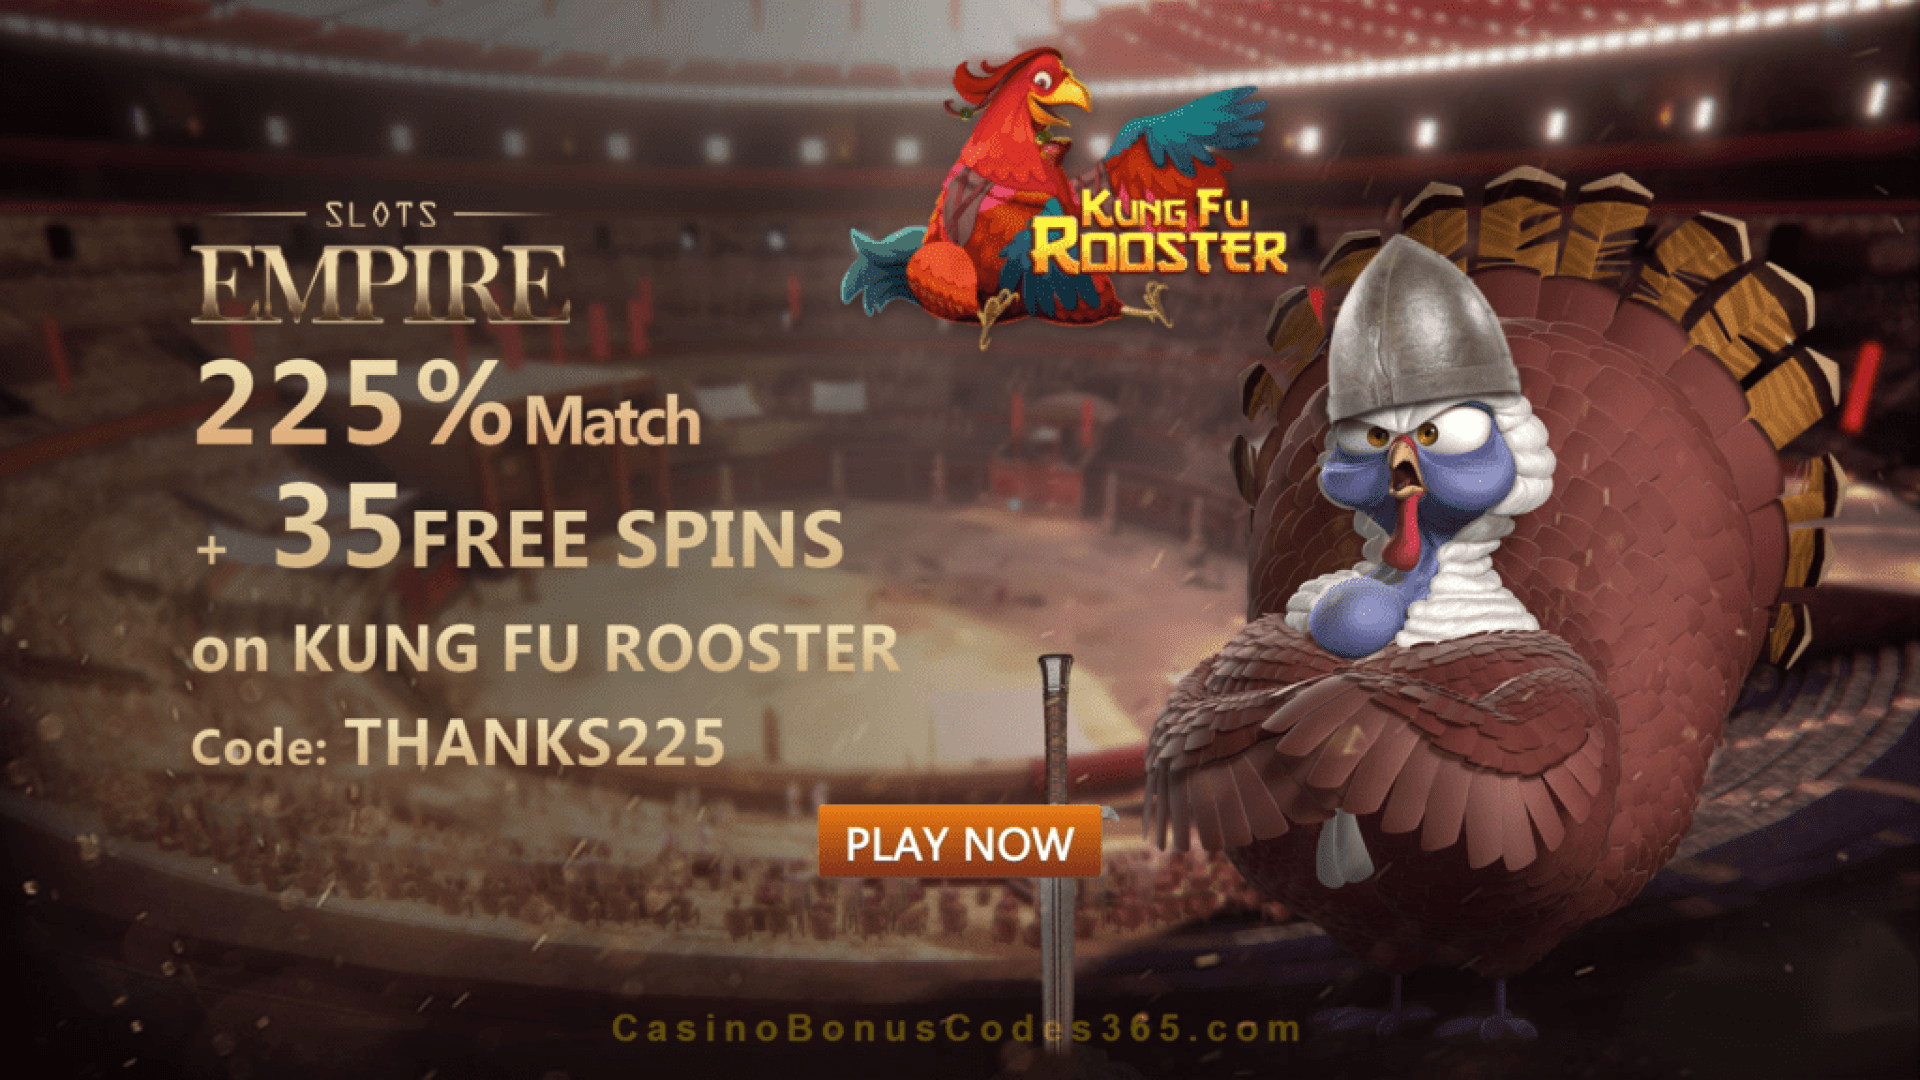 Slots Empire 225% Match Bonus plus 35 FREE Spins on RTG Kung Fu Rooster Welcome Pack